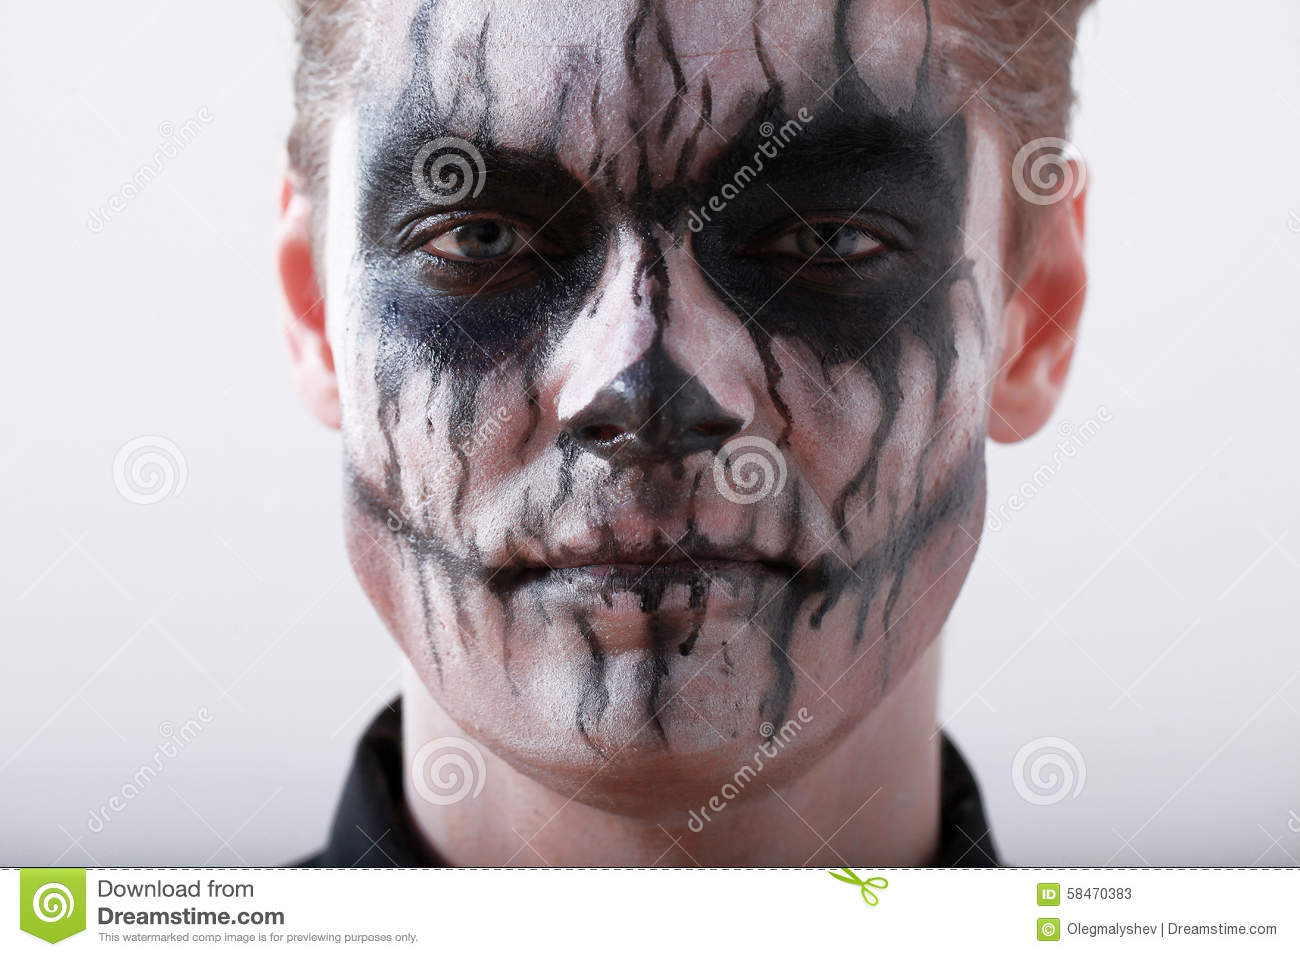 Scary halloween makeup for guys